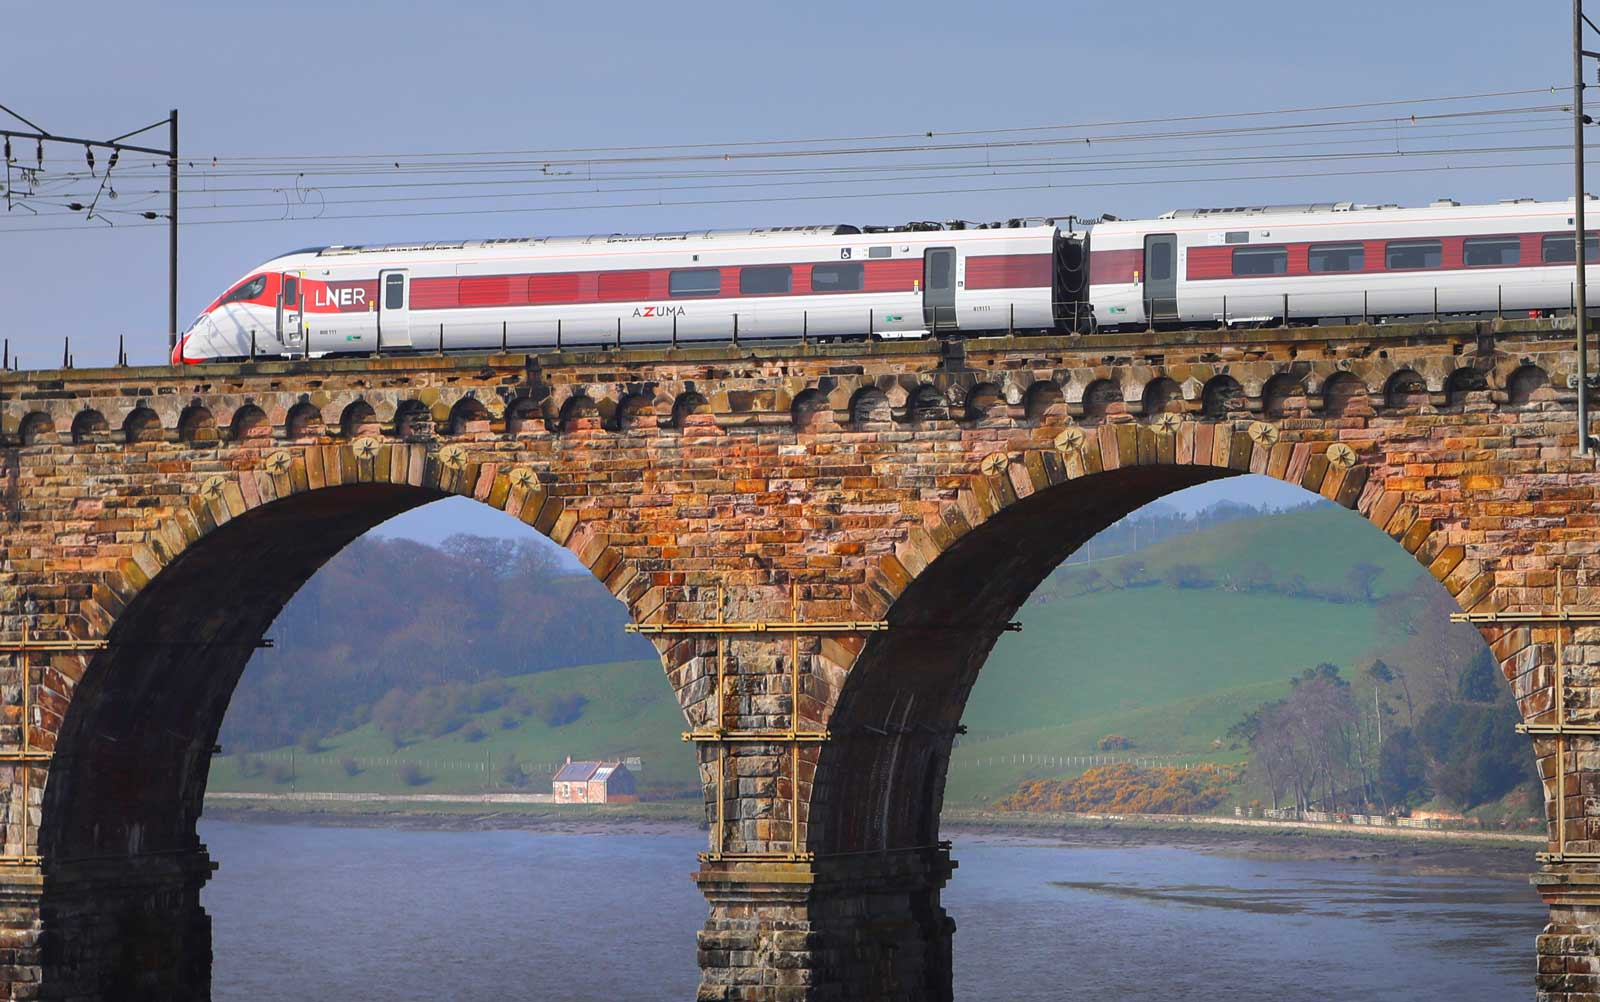 LNER offers standard Flybe staff and customers free travel